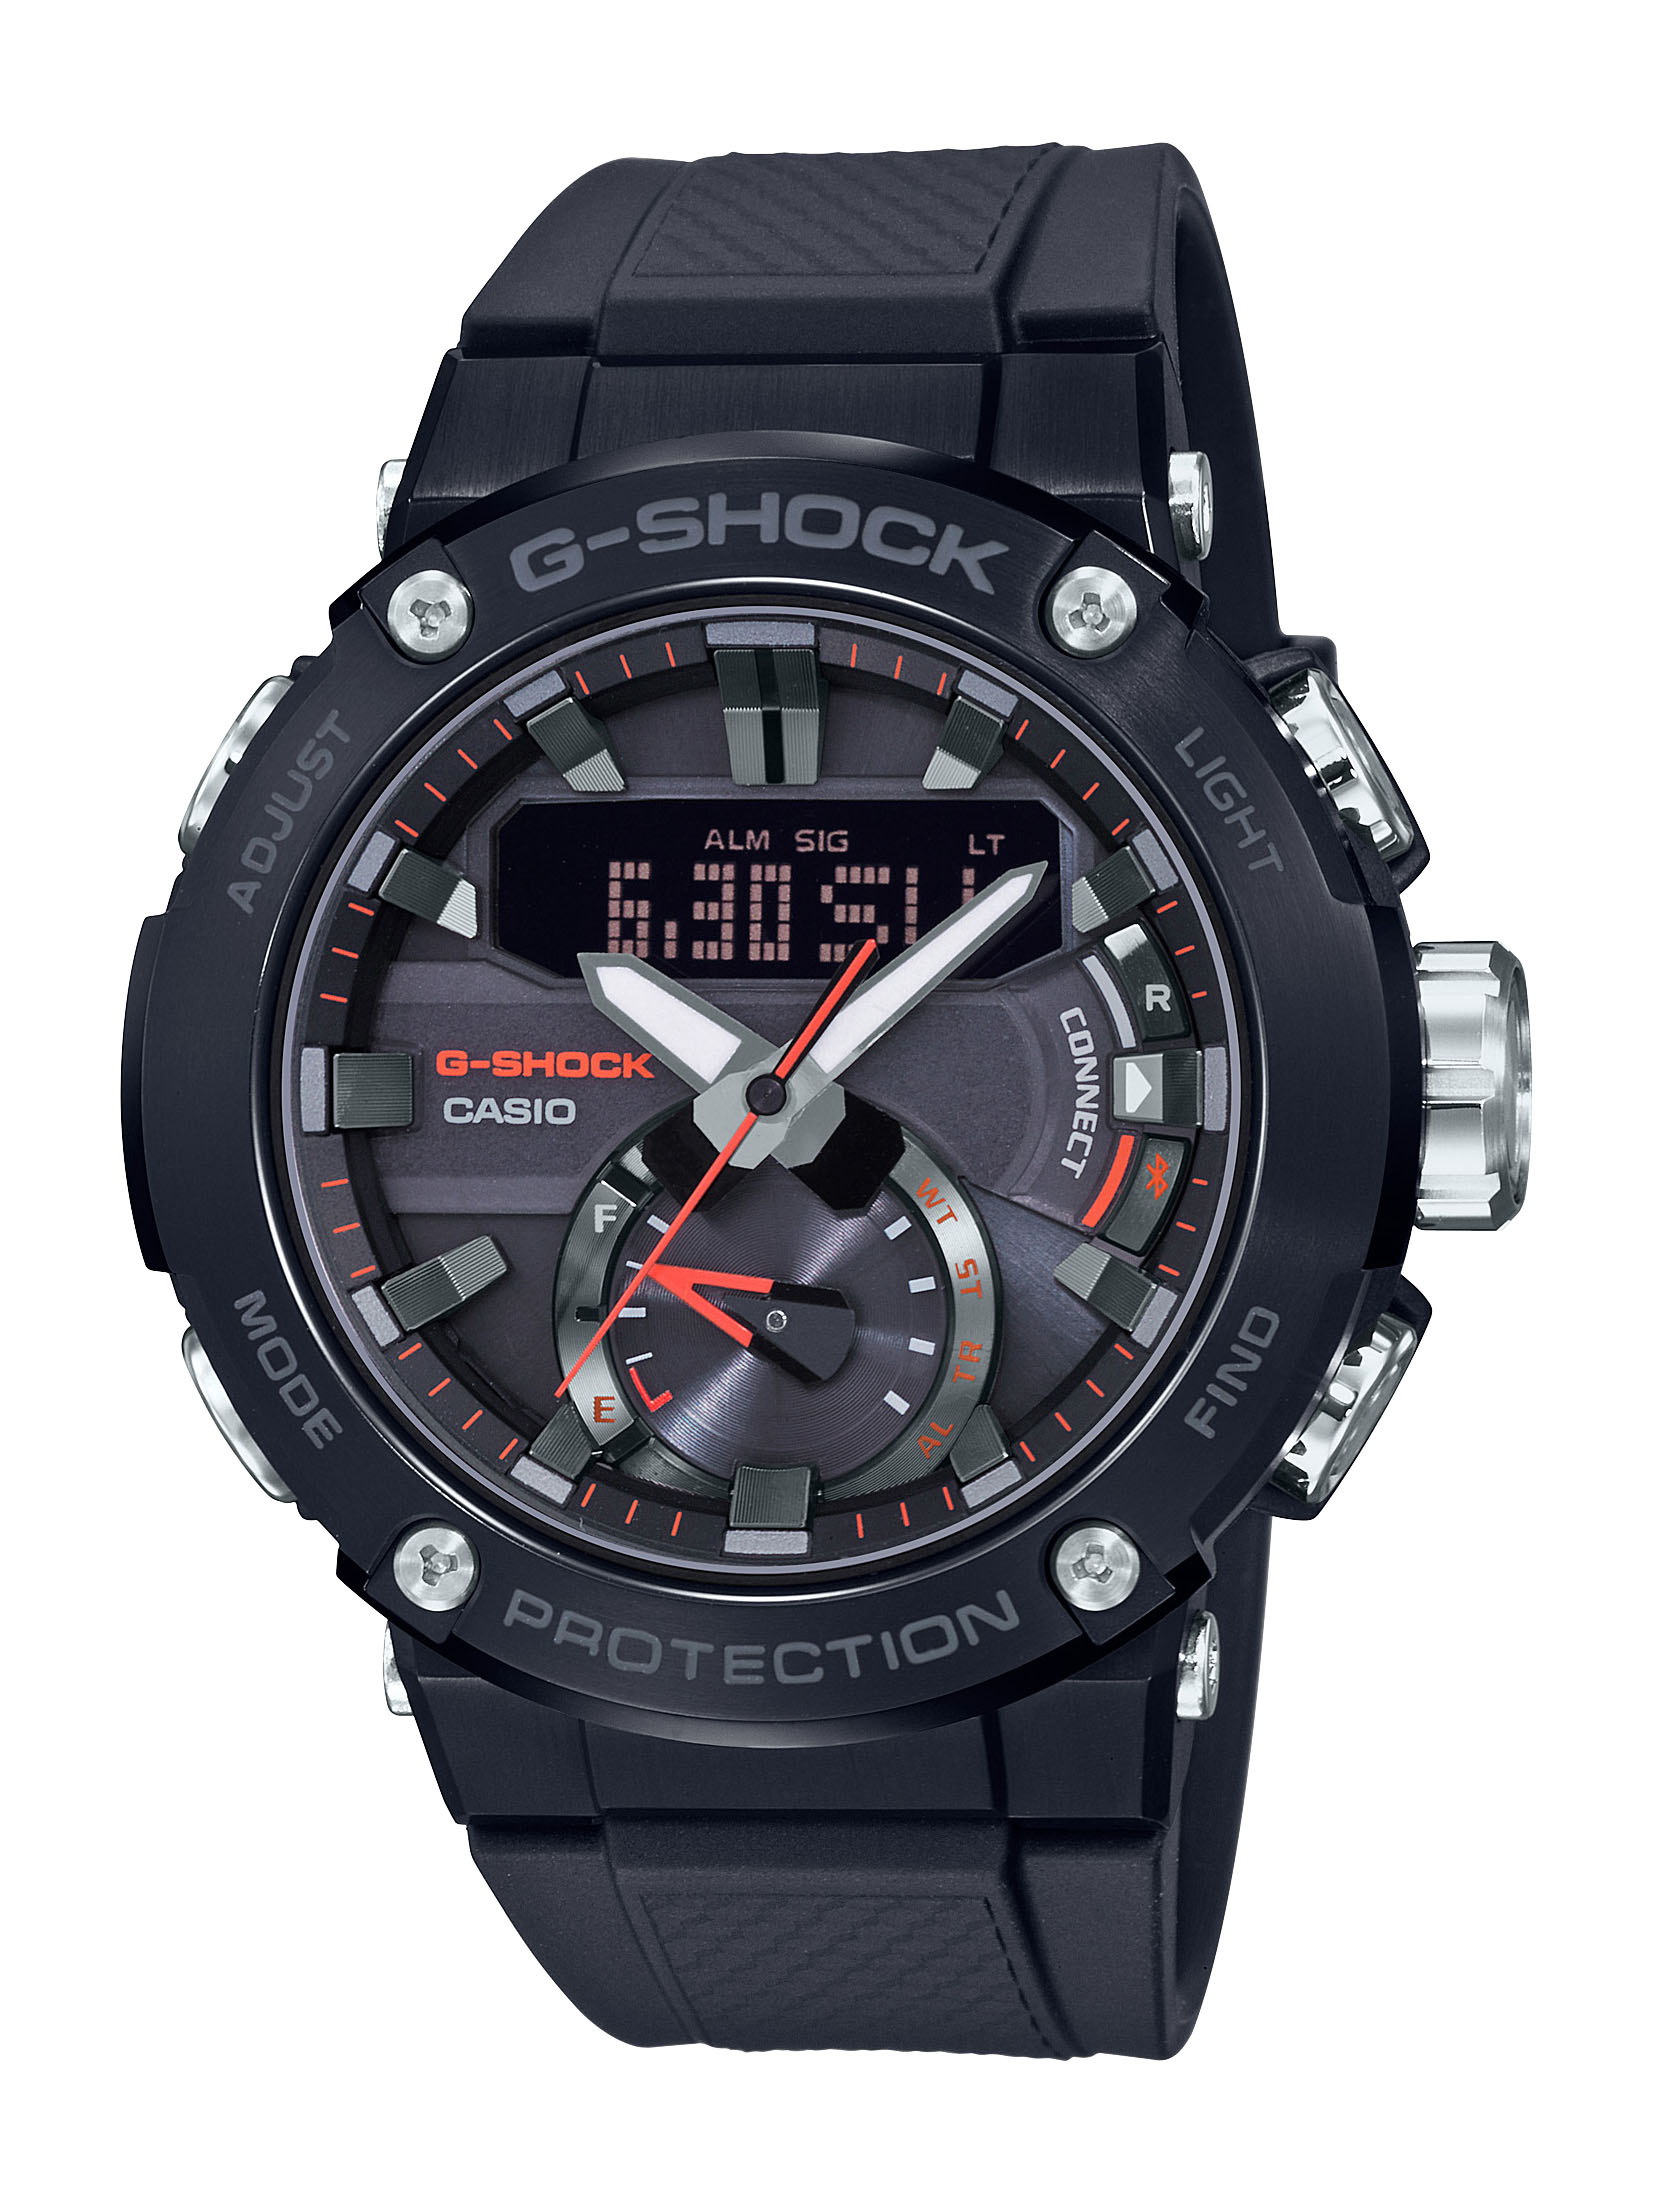 G-Steel Carbon GSTB200B-1ADR Black Rubber Mens Watch